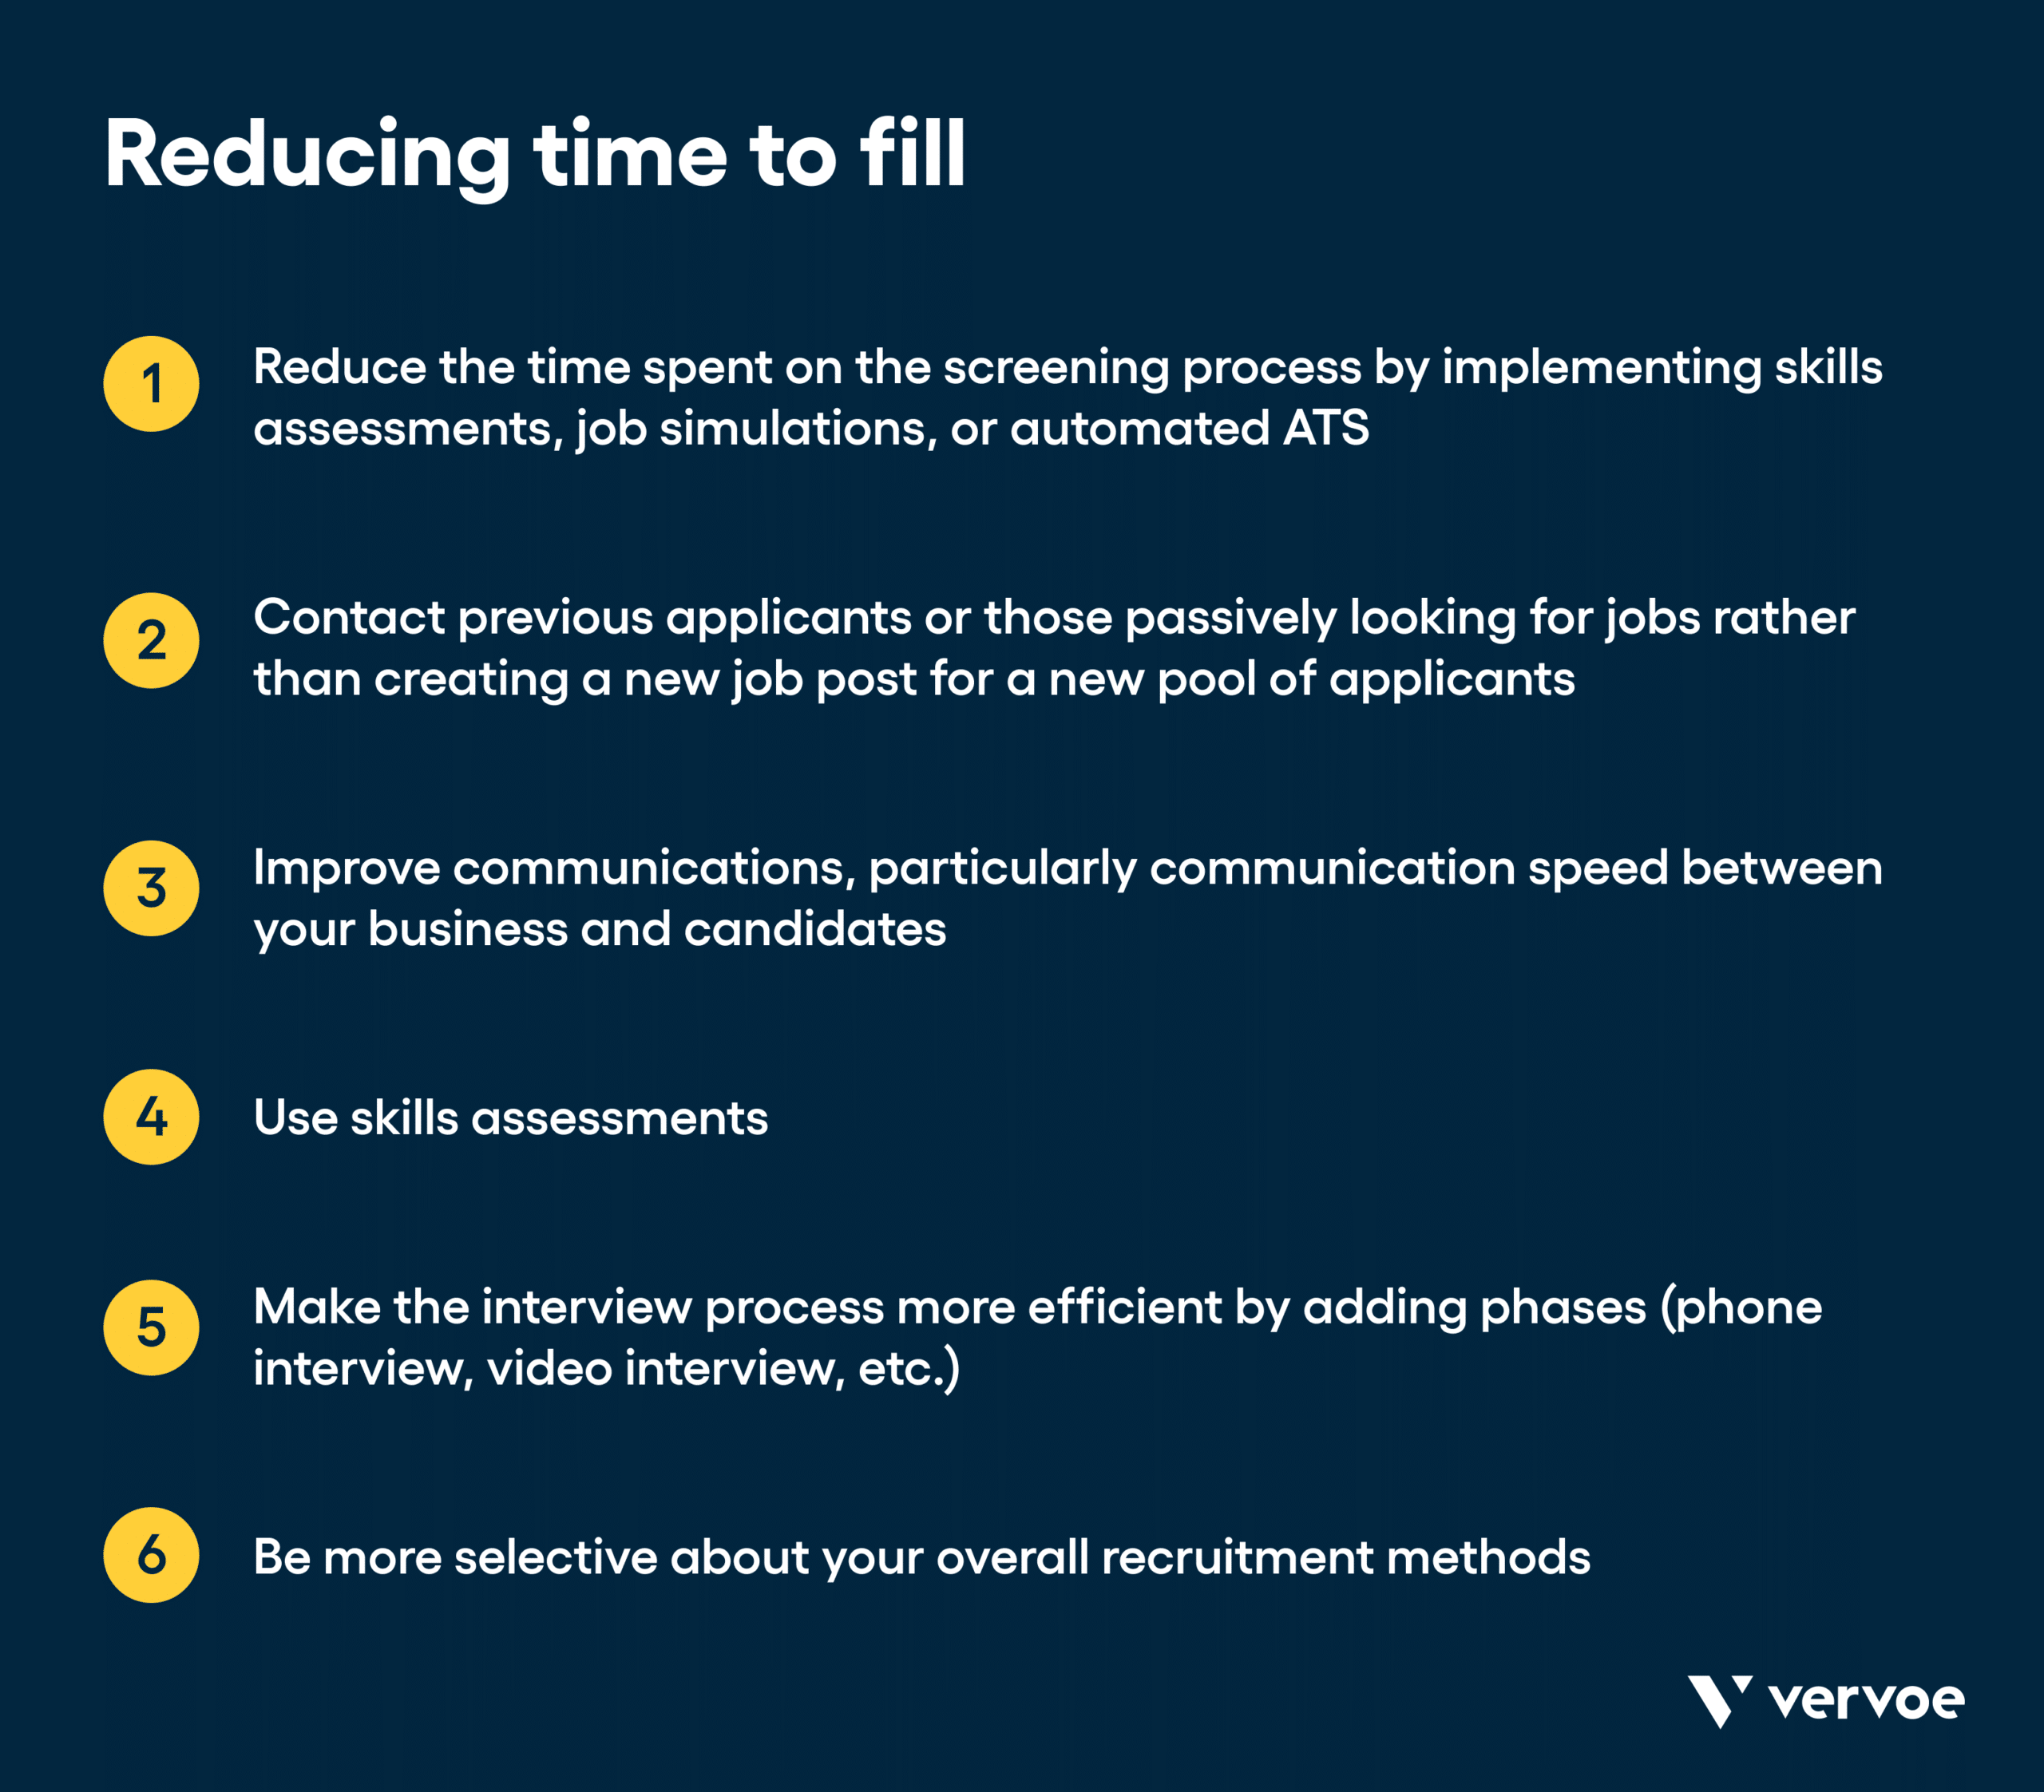 Graphic showing how to reduce time to fill